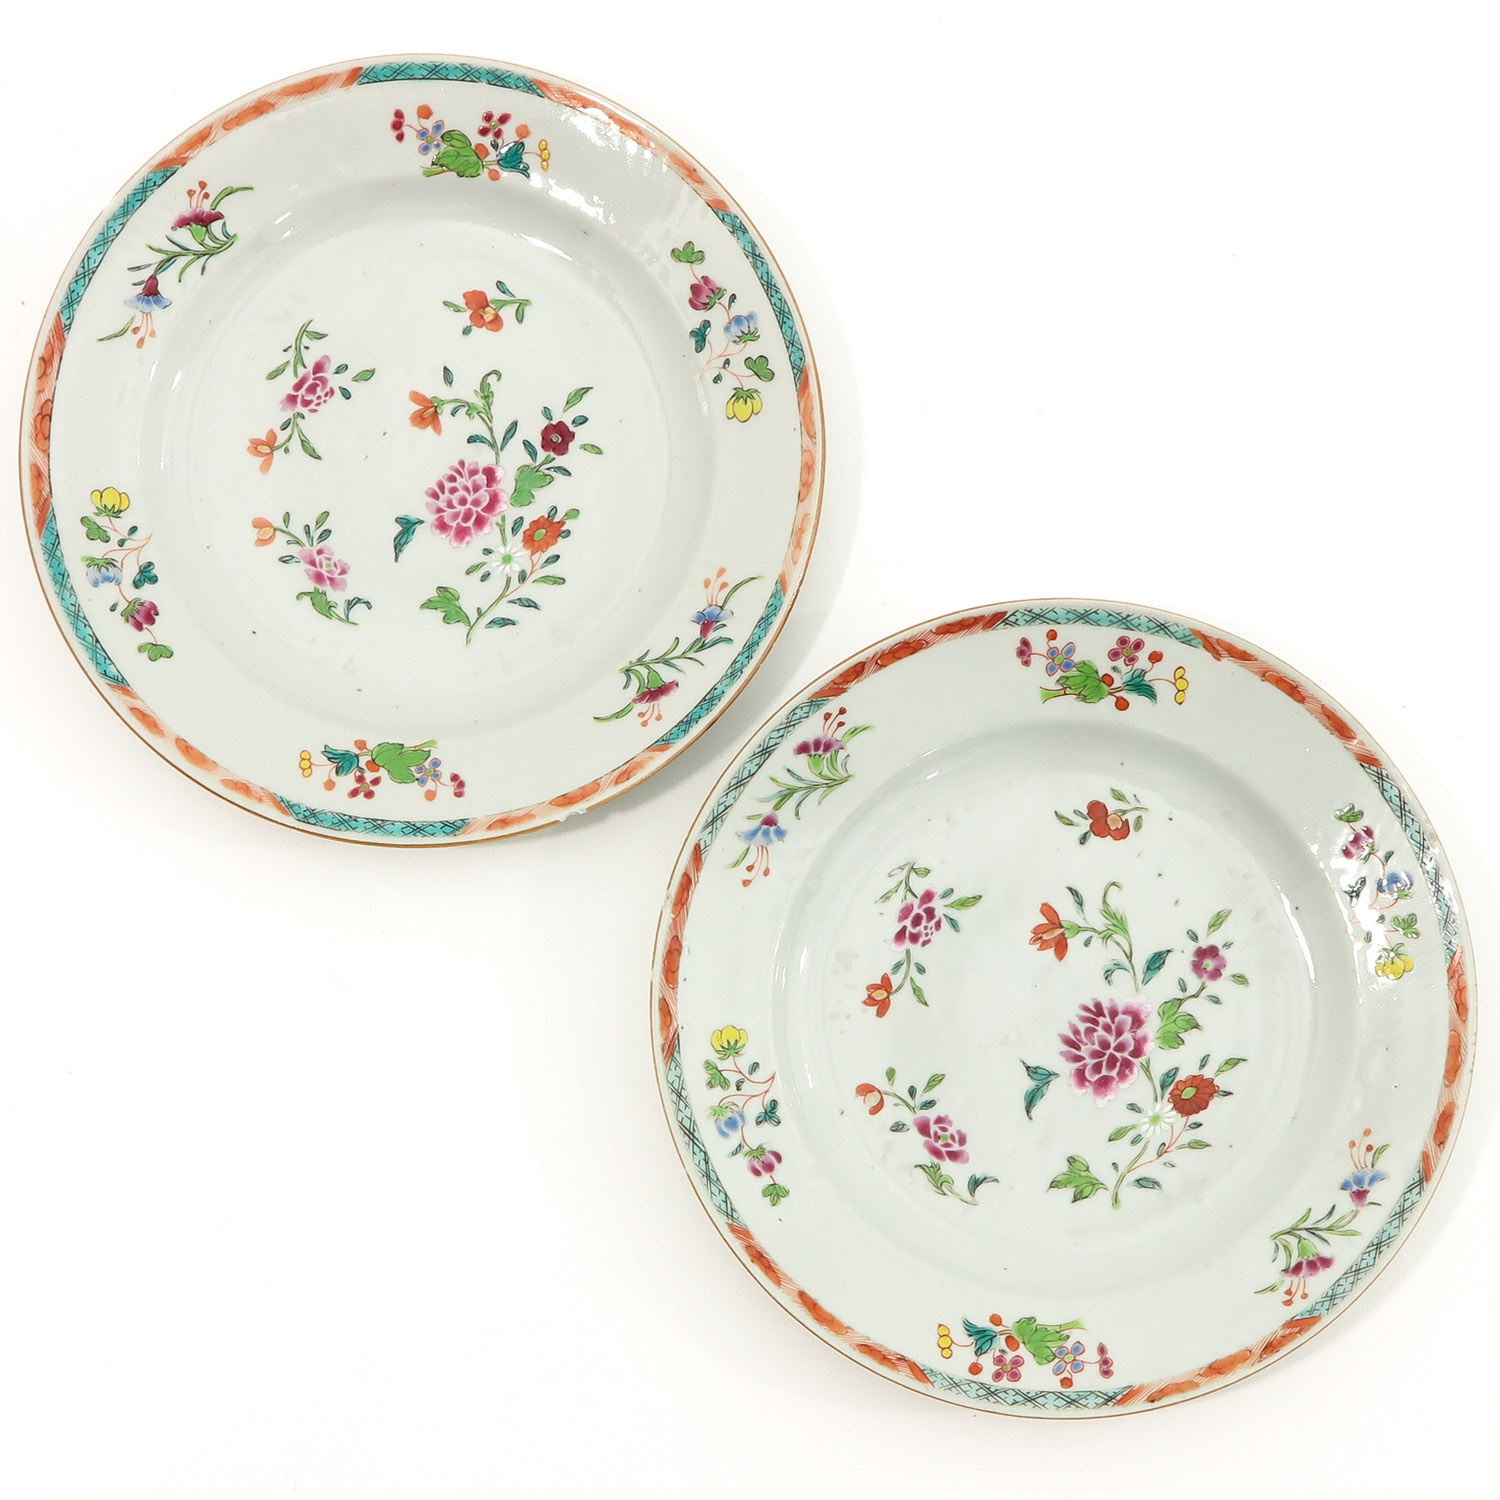 A Series of Famille Rose Plates - Image 3 of 10